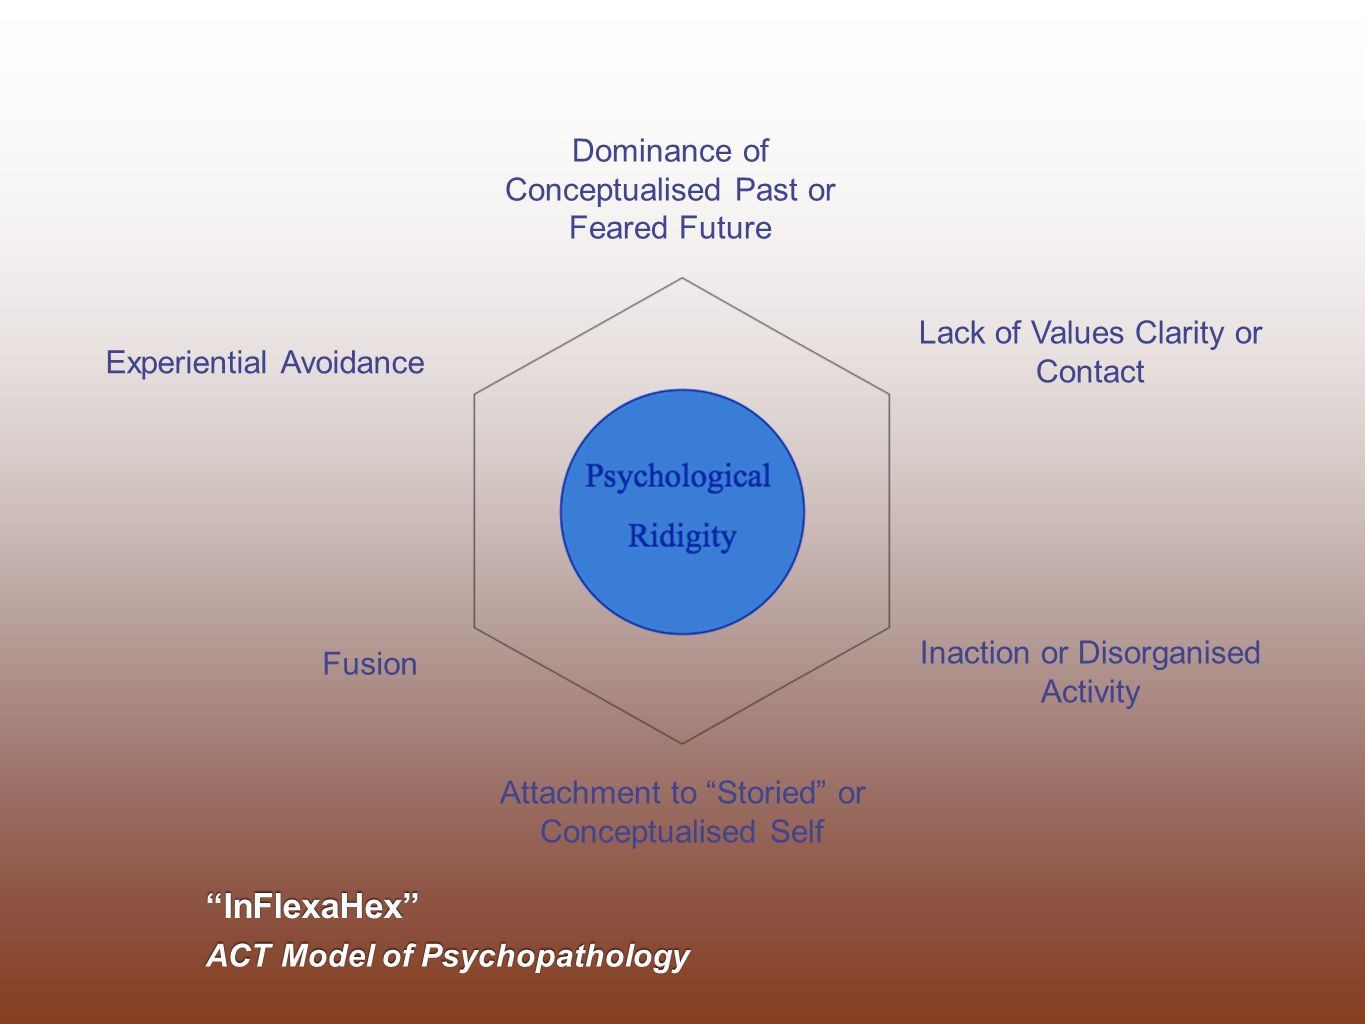 InFlexaHex ACT Model of Psychopathology Lack of Values Clarity or Contact Fusion Inaction or Disorganised Activity Dominance of Conceptualised Past or